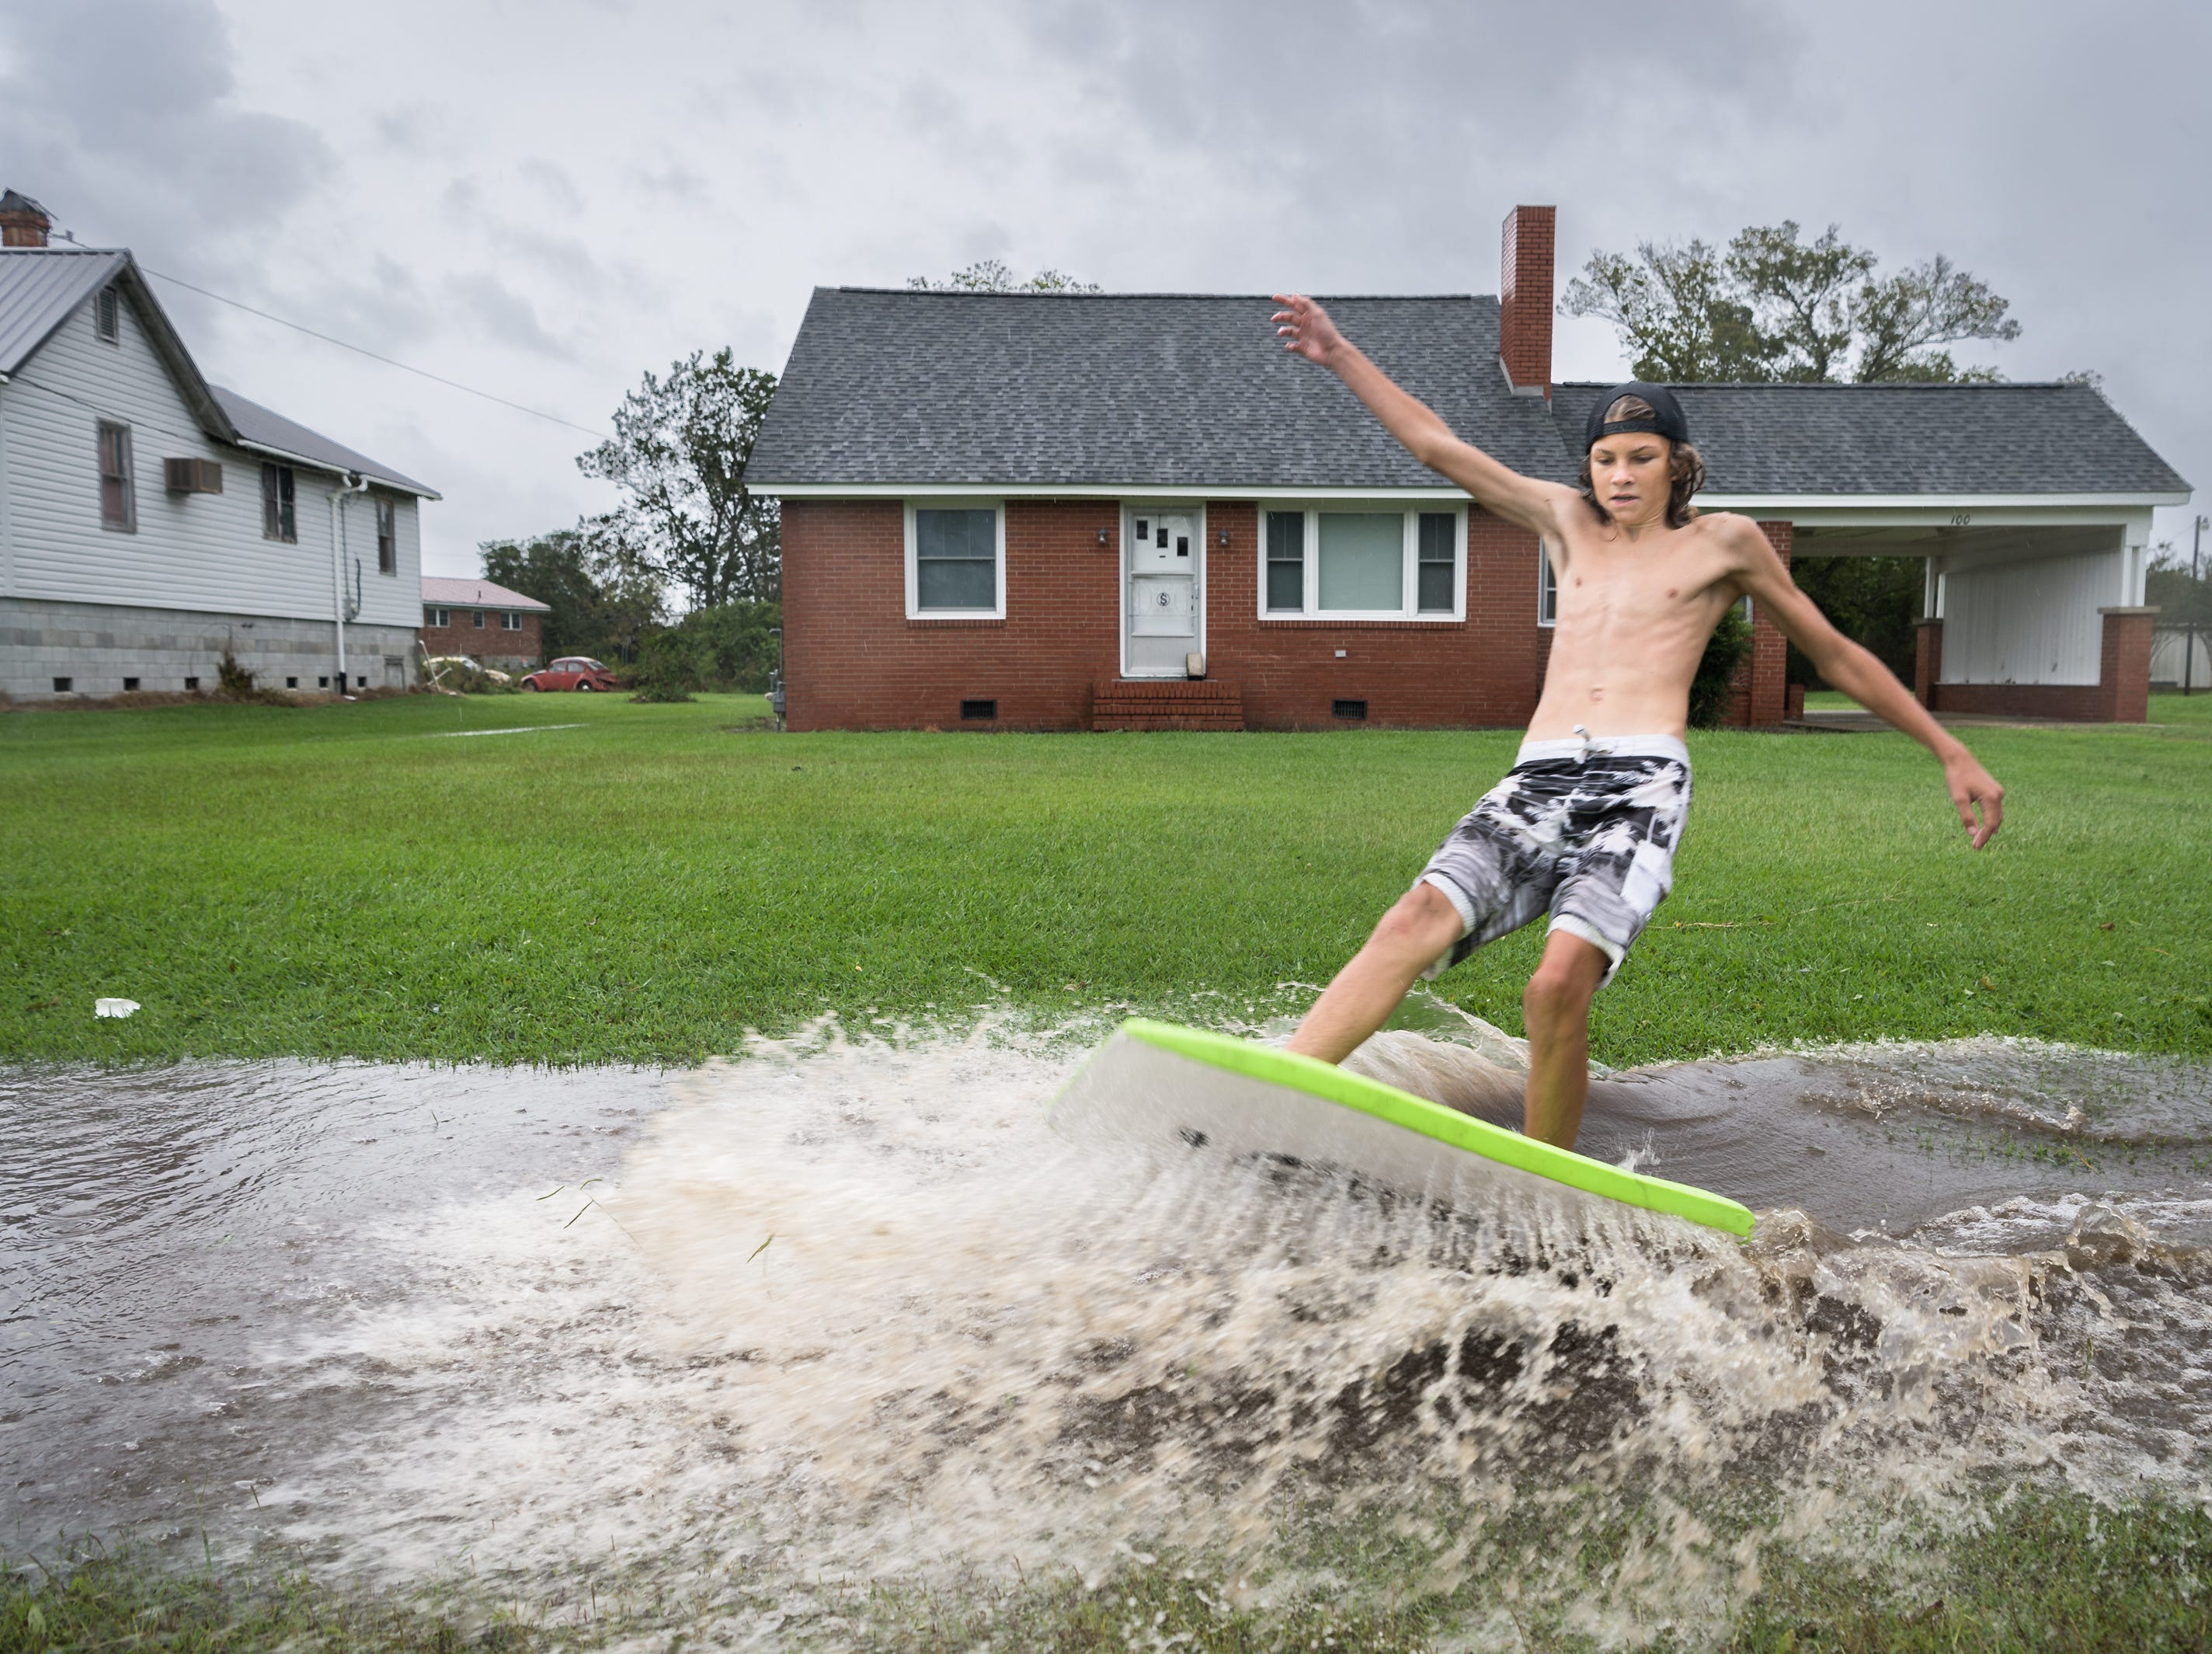 Deacon Etheredge, 14, surfs on a large puddle on Main Street in Swan Quarter, N.C Sept. 14, 2018, after Hurricane Florence made landfall.